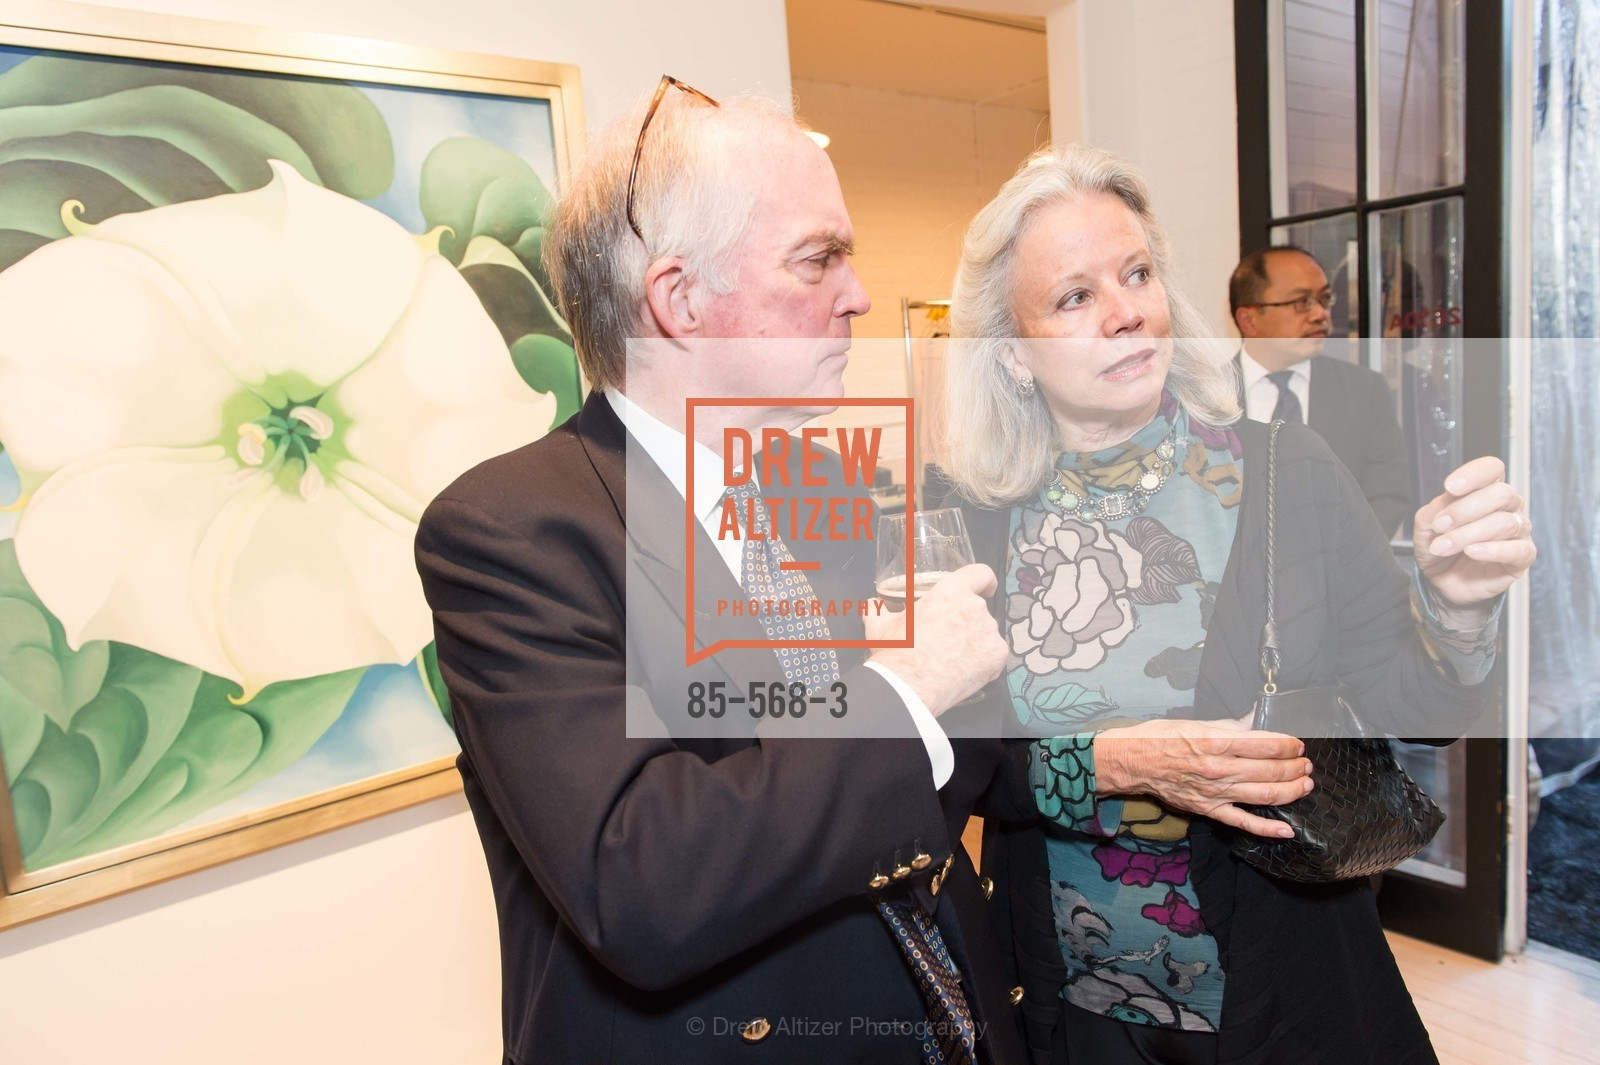 Charles Moffett, Susie McBaine, SOTHEBY'S  Hosts a Private Viewing of Highlights from the Collection of MRS. PAUL MELLON, US, September 17th, 2014,Drew Altizer, Drew Altizer Photography, full-service agency, private events, San Francisco photographer, photographer california